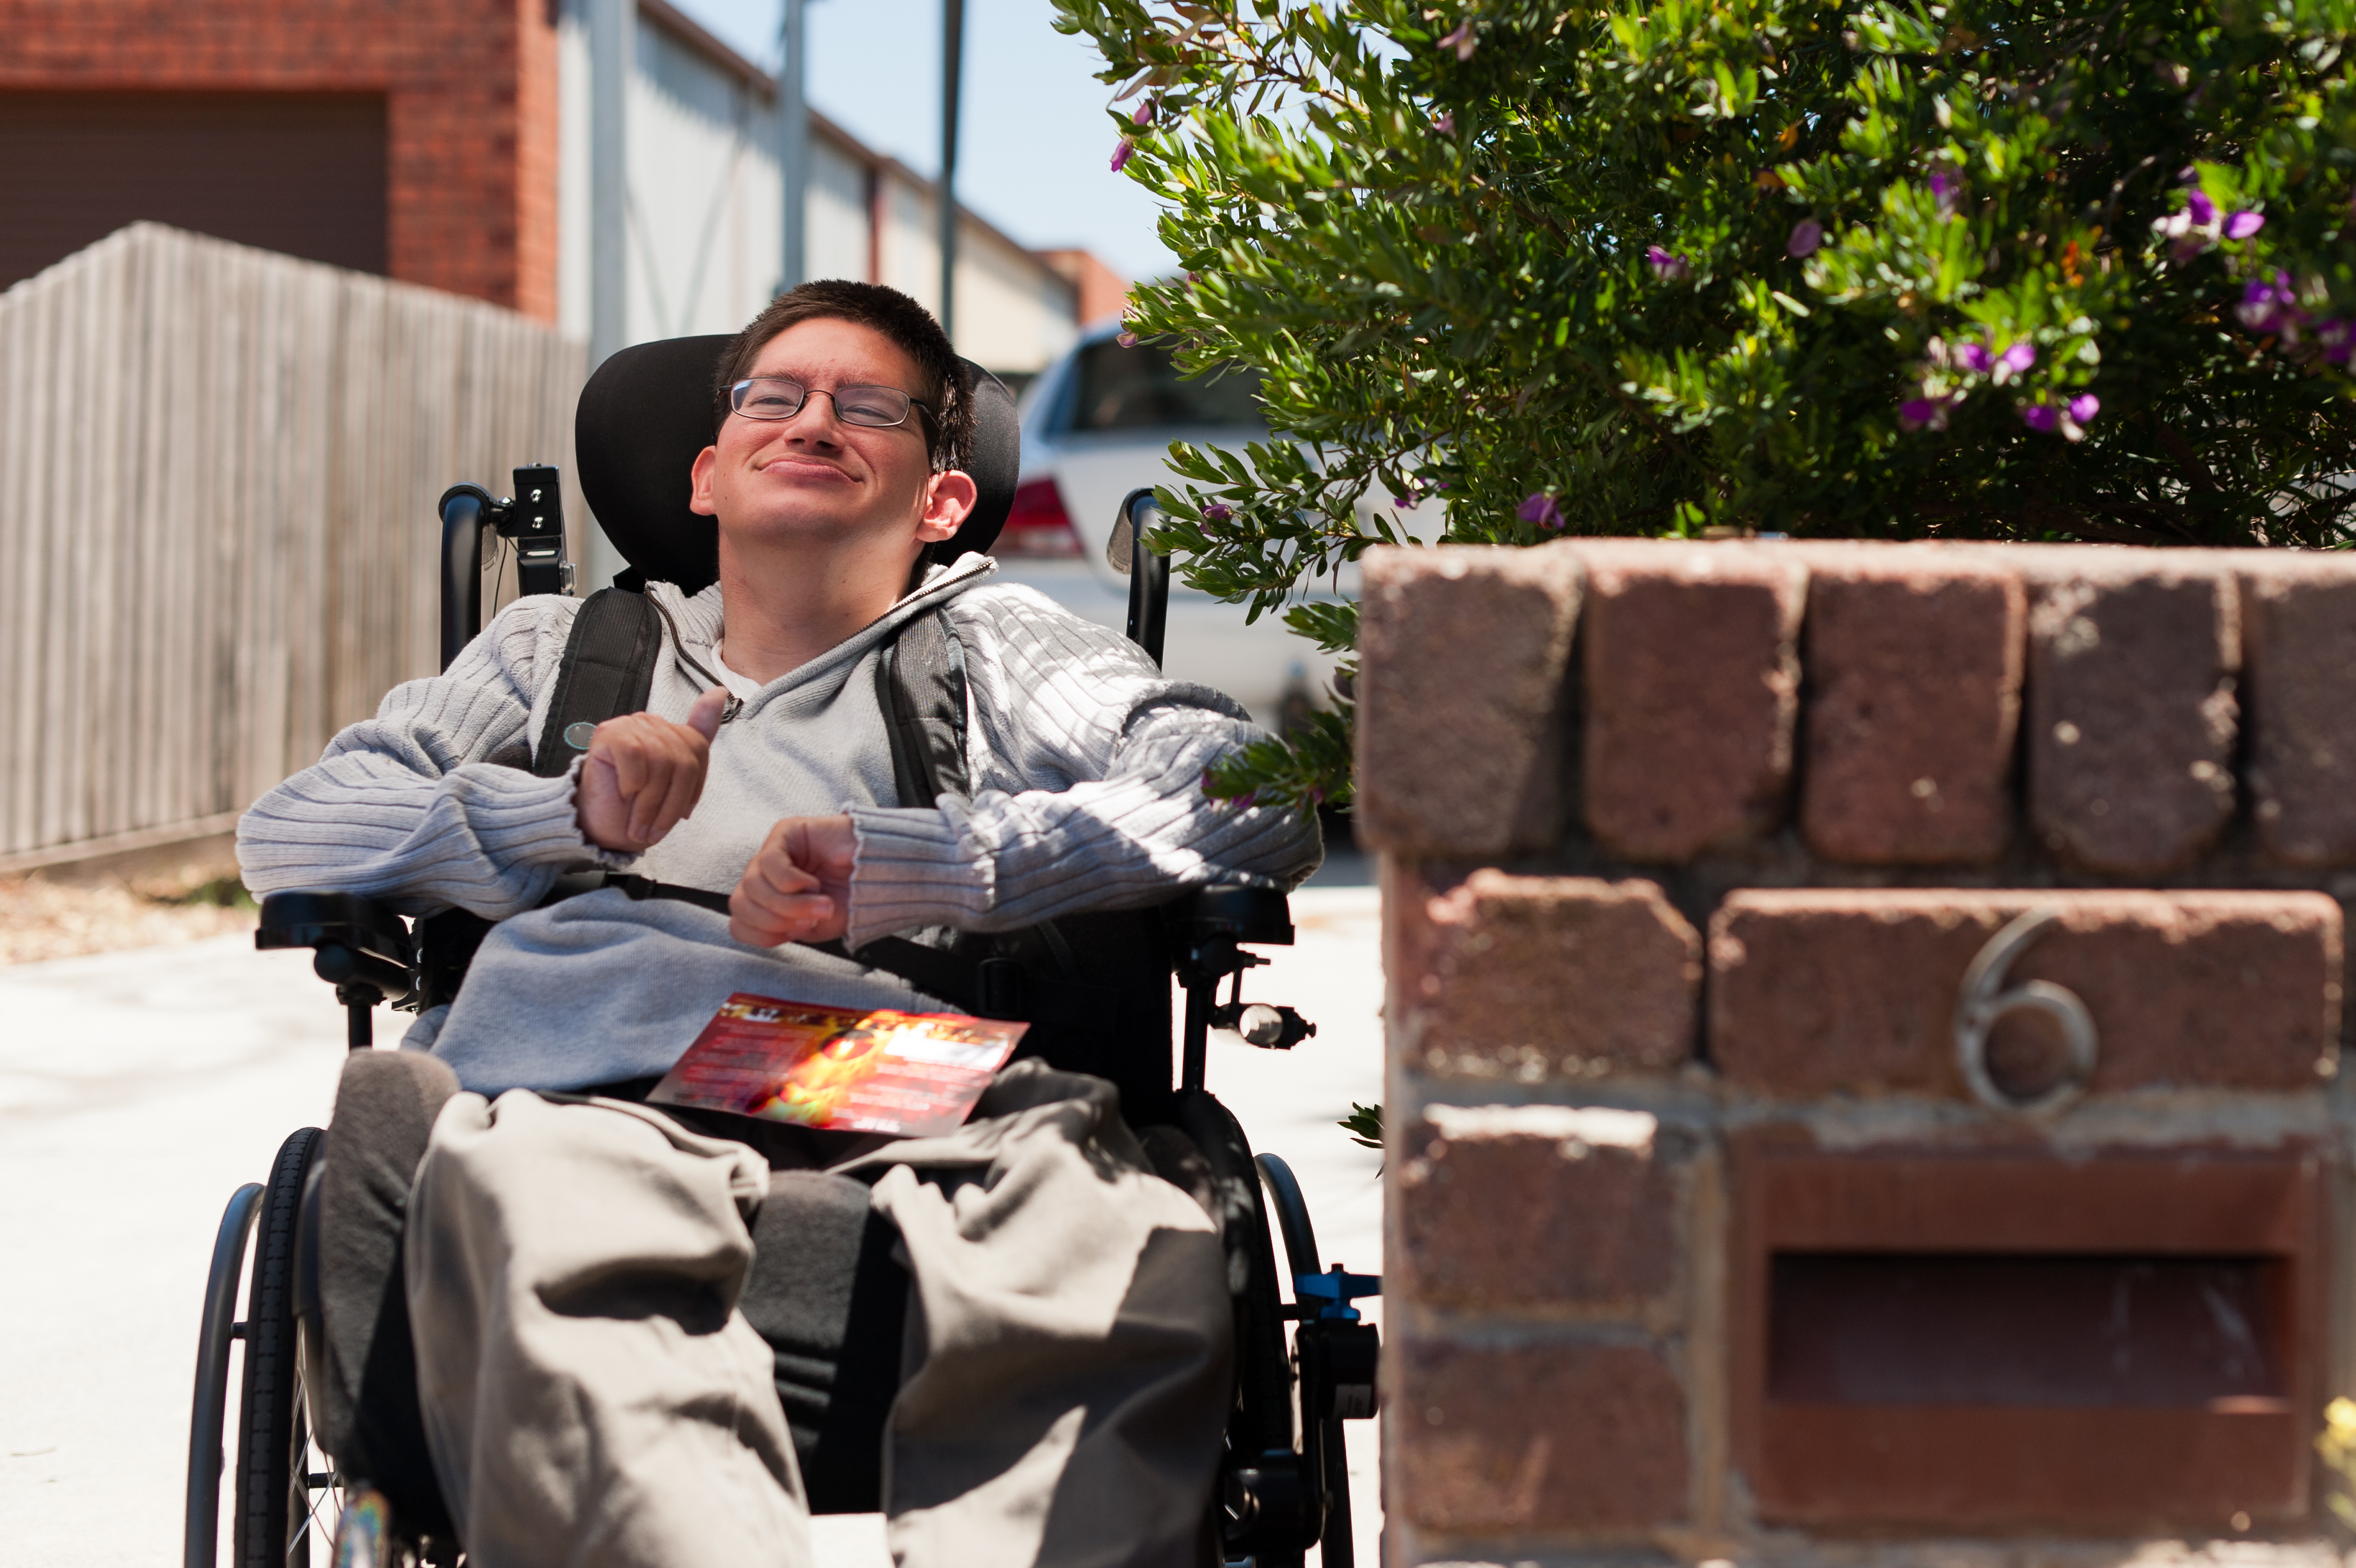 Young male in wheelchair